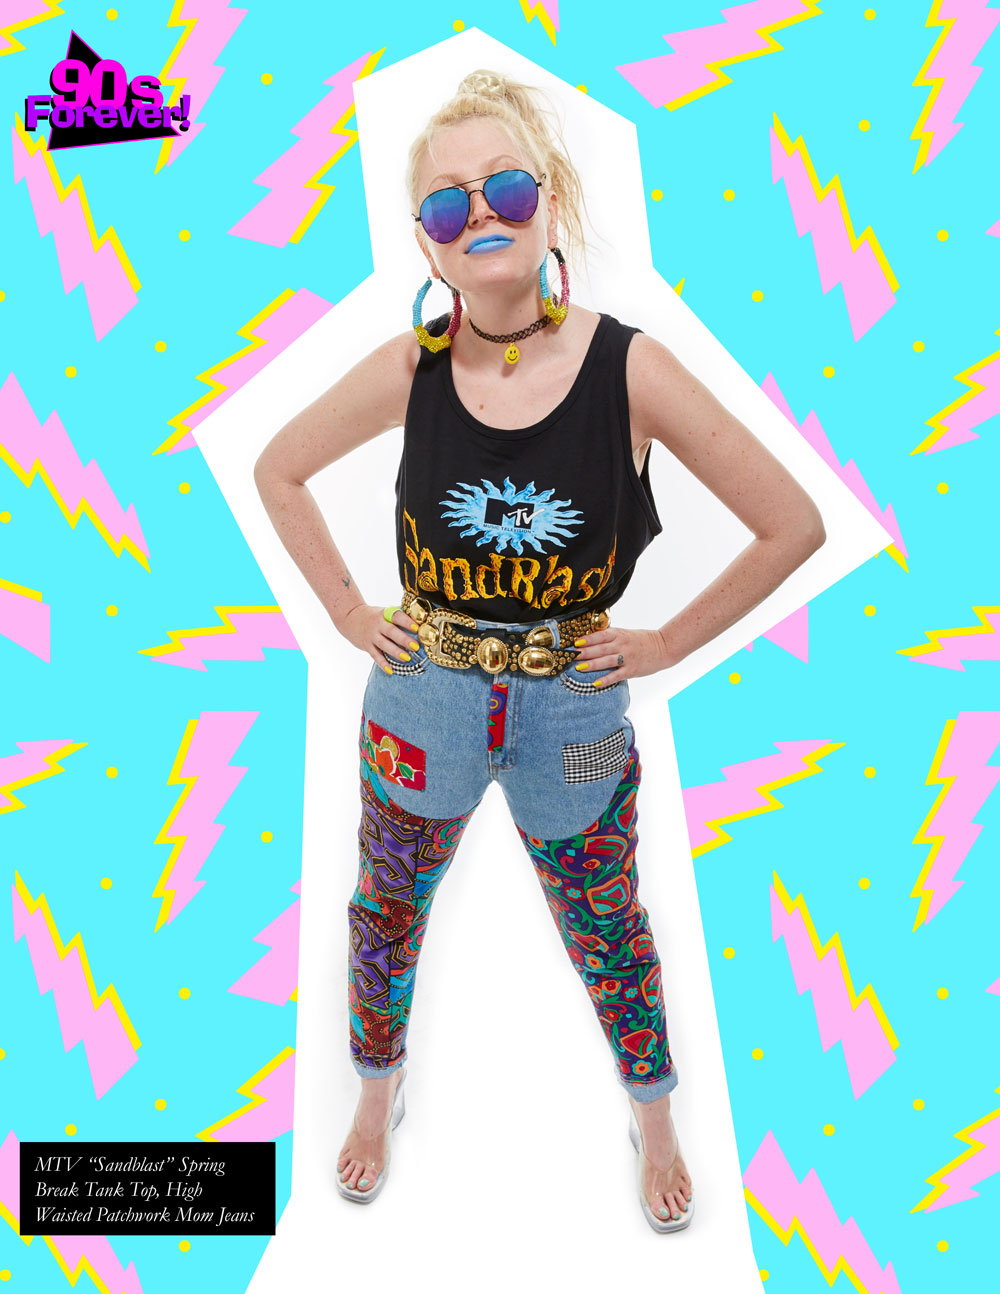 90s Forever Retro Vintage Fashion Apparel Lookbook - studded knit crop top with acid wash and lycra  skinny jeans